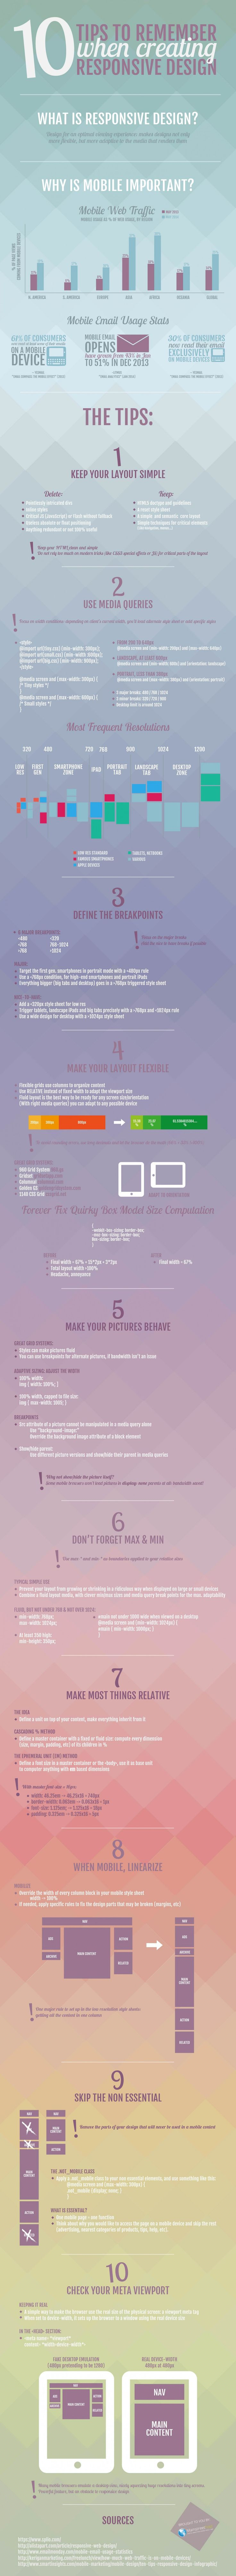 Design Tips For Mobile Blogs And Newsletters - #infographic